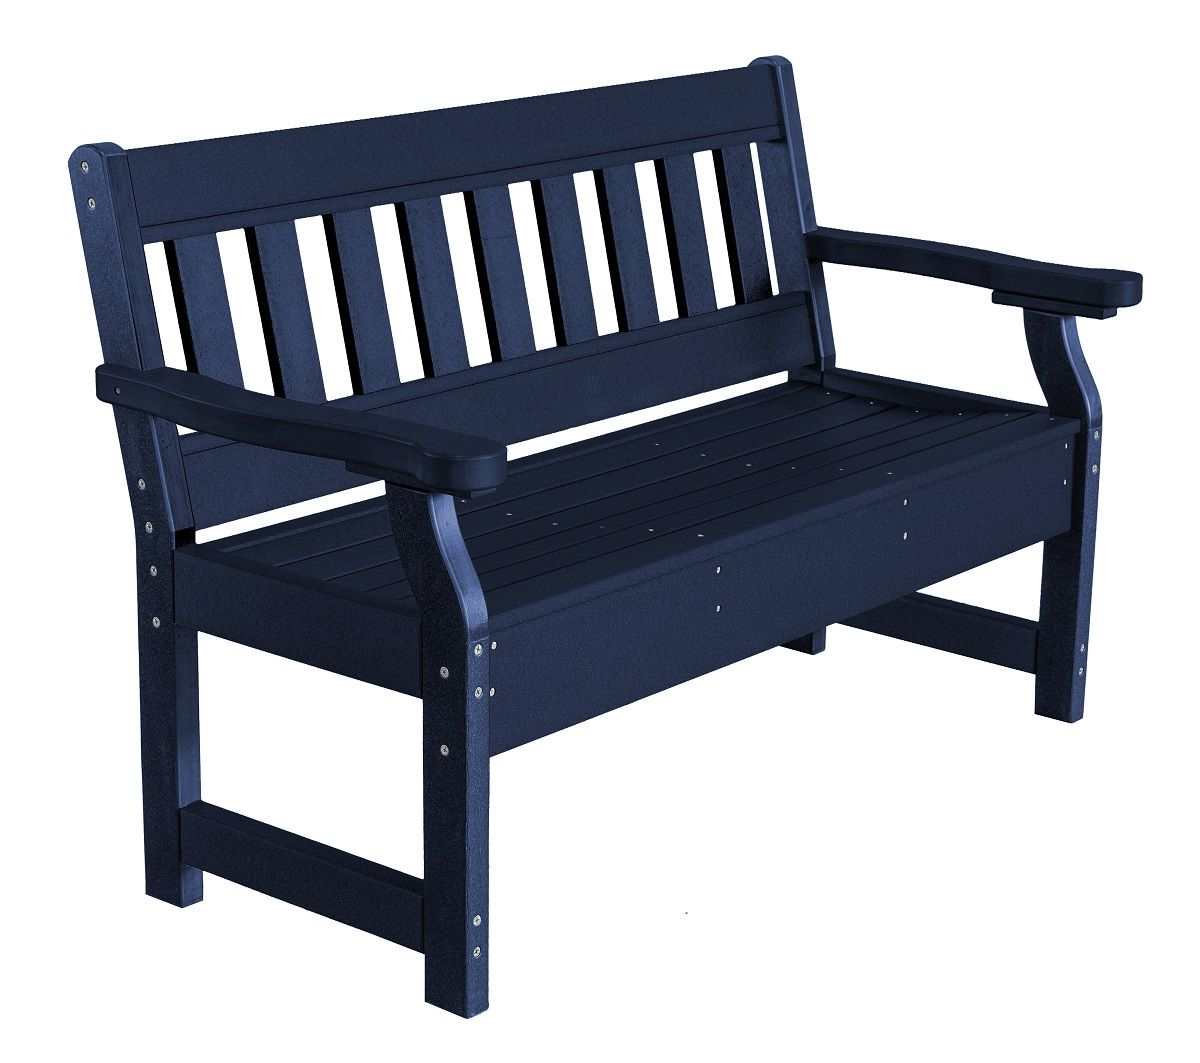 Patriot Blue Aden Garden Bench